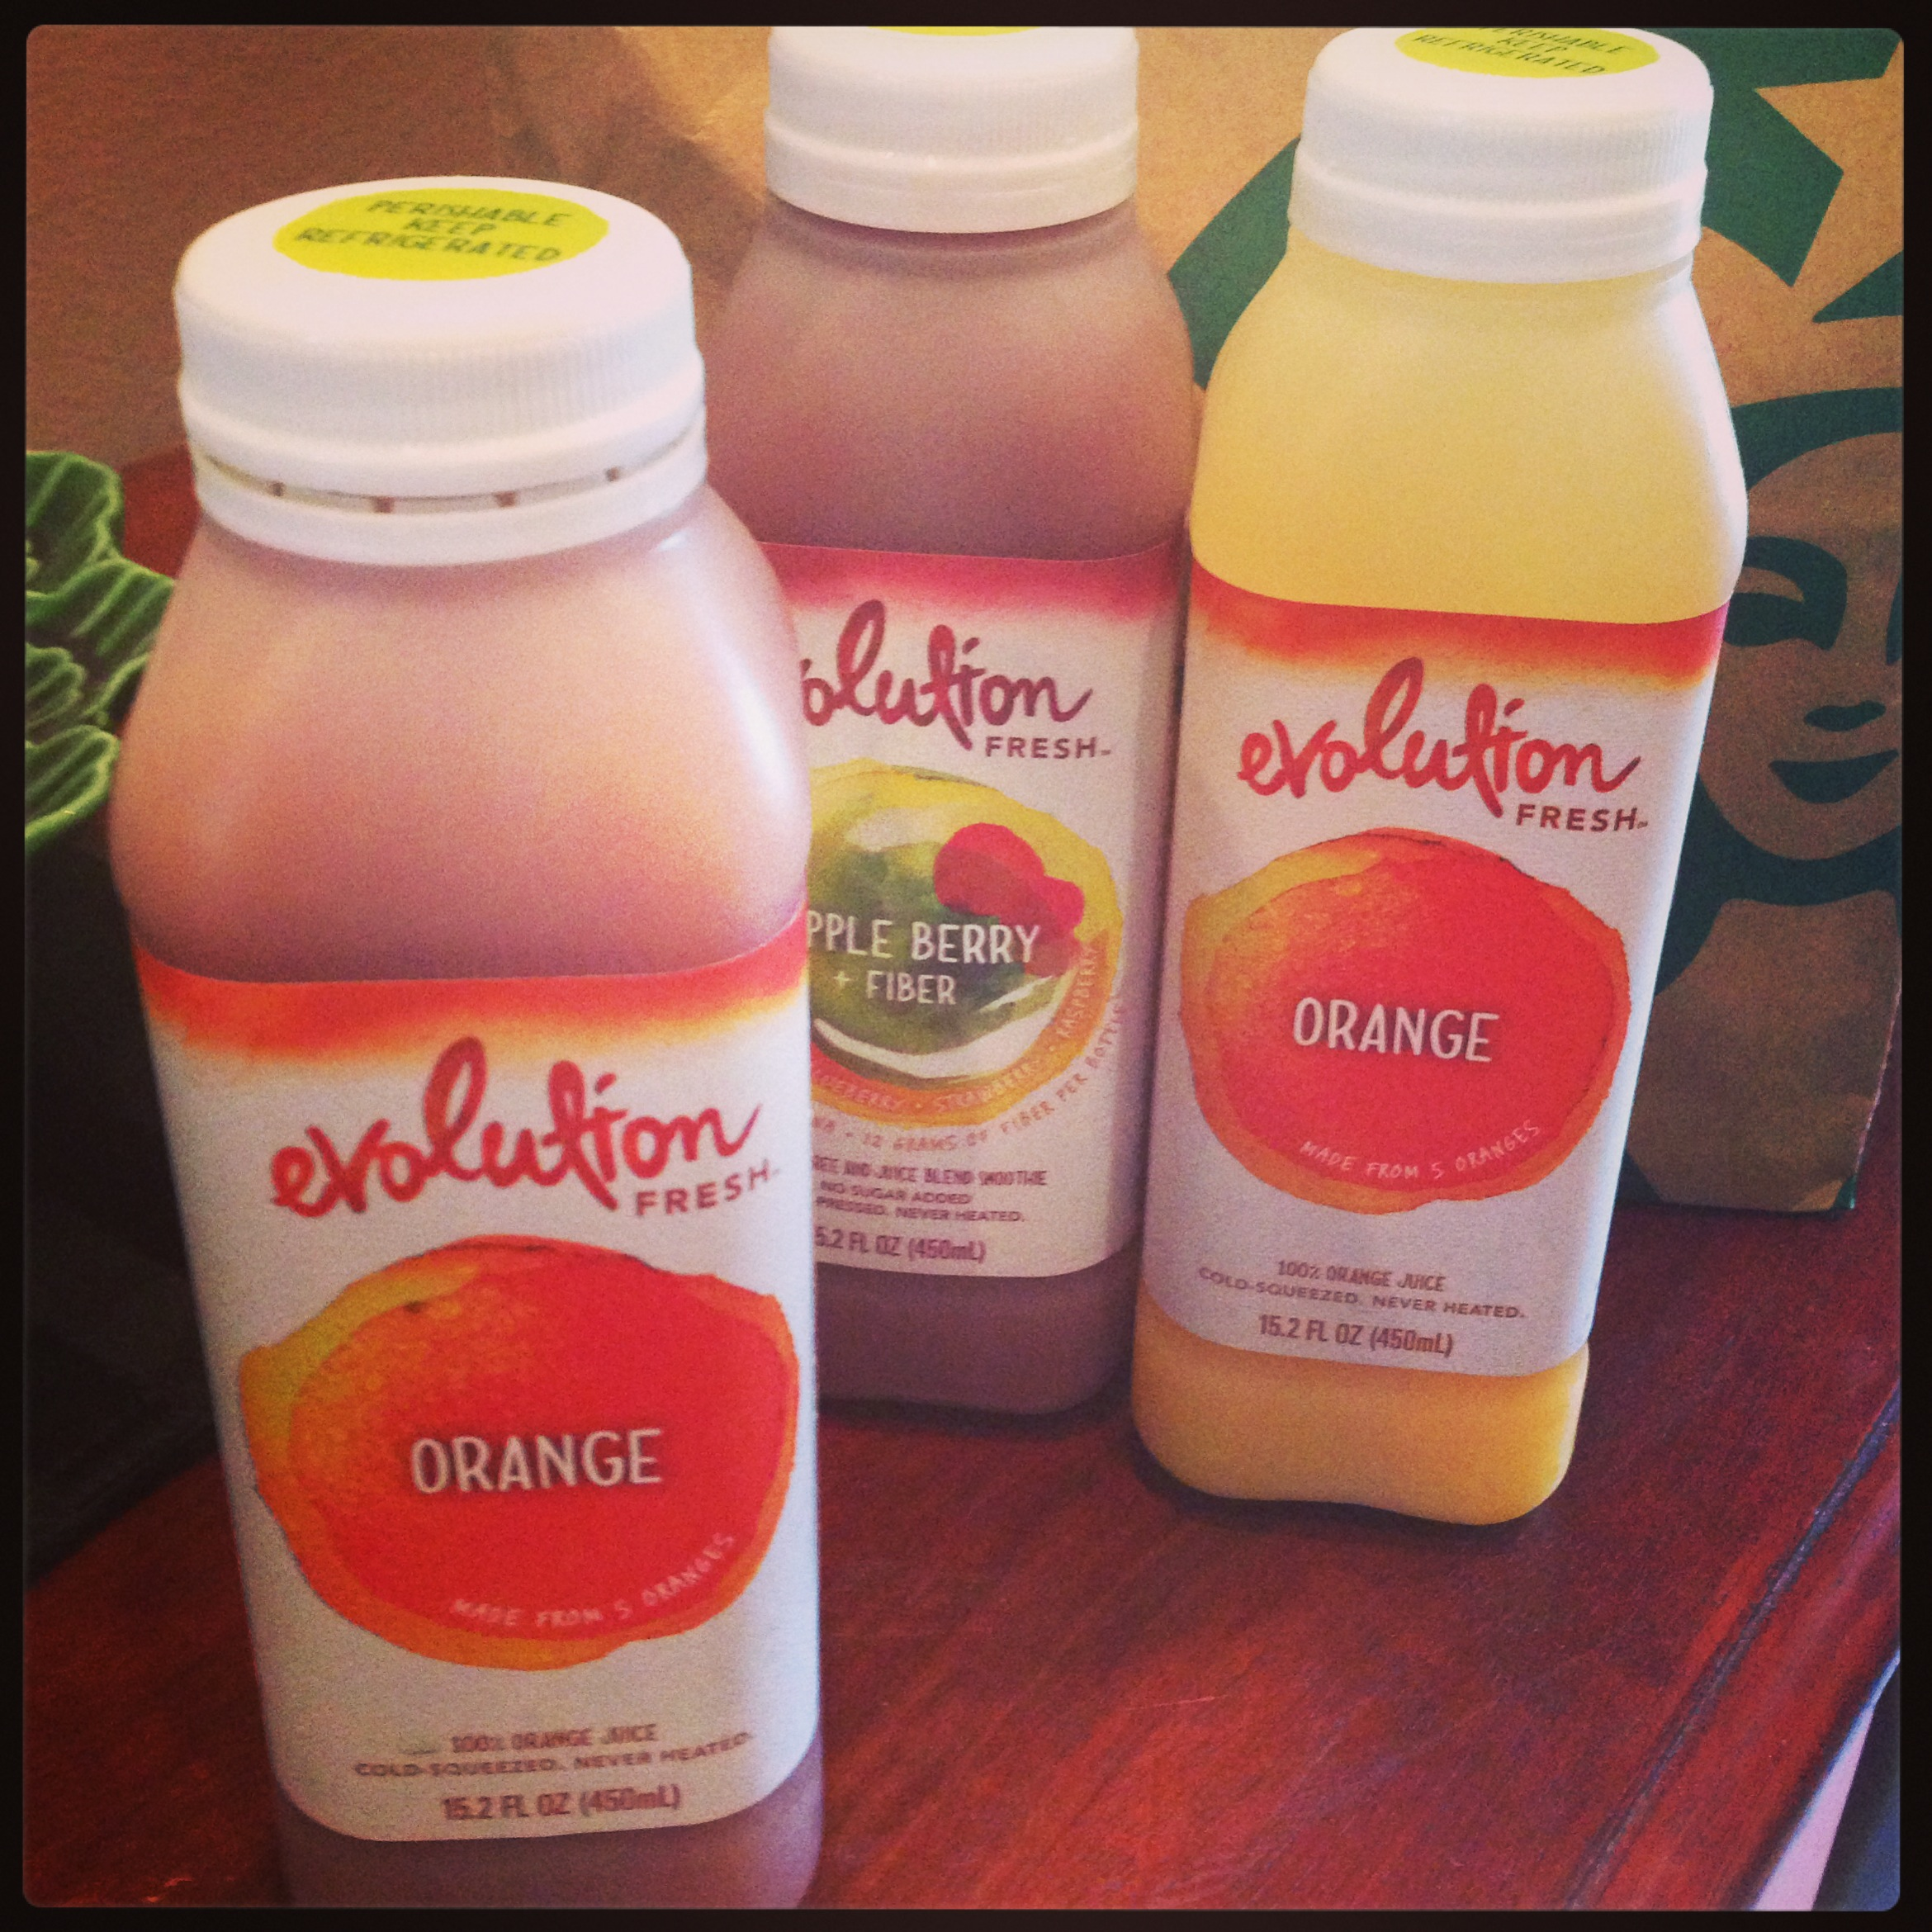 Apple Berry Fiber and Orange Evolution Fresh juice